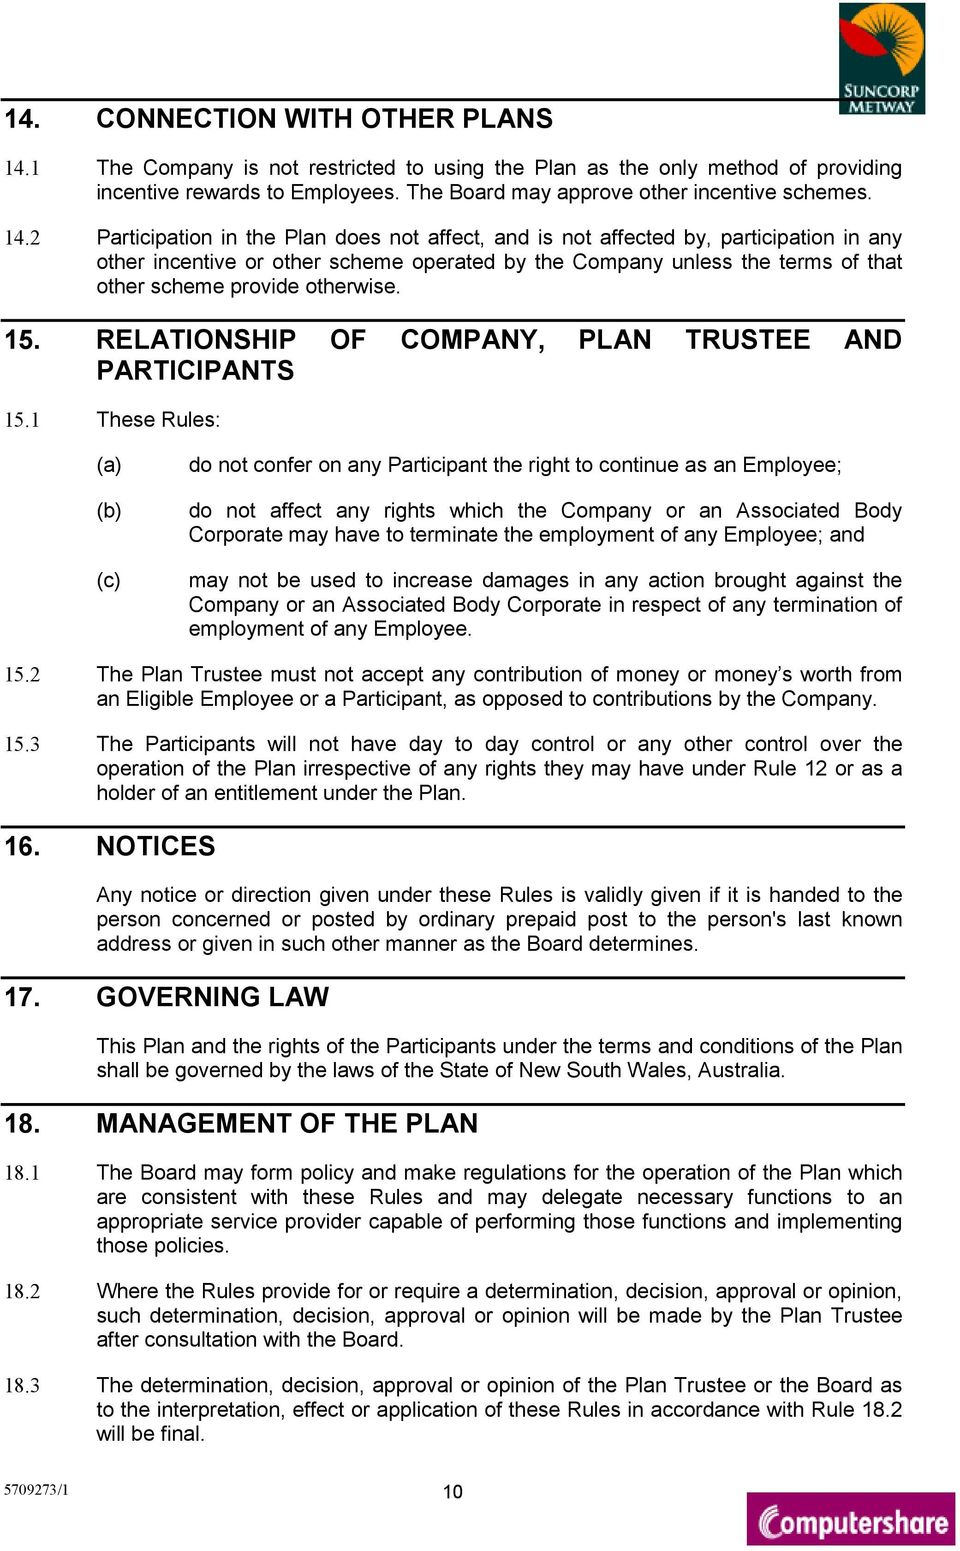 2 Participation in the Plan does not affect, and is not affected by, participation in any other incentive or other scheme operated by the Company unless the terms of that other scheme provide